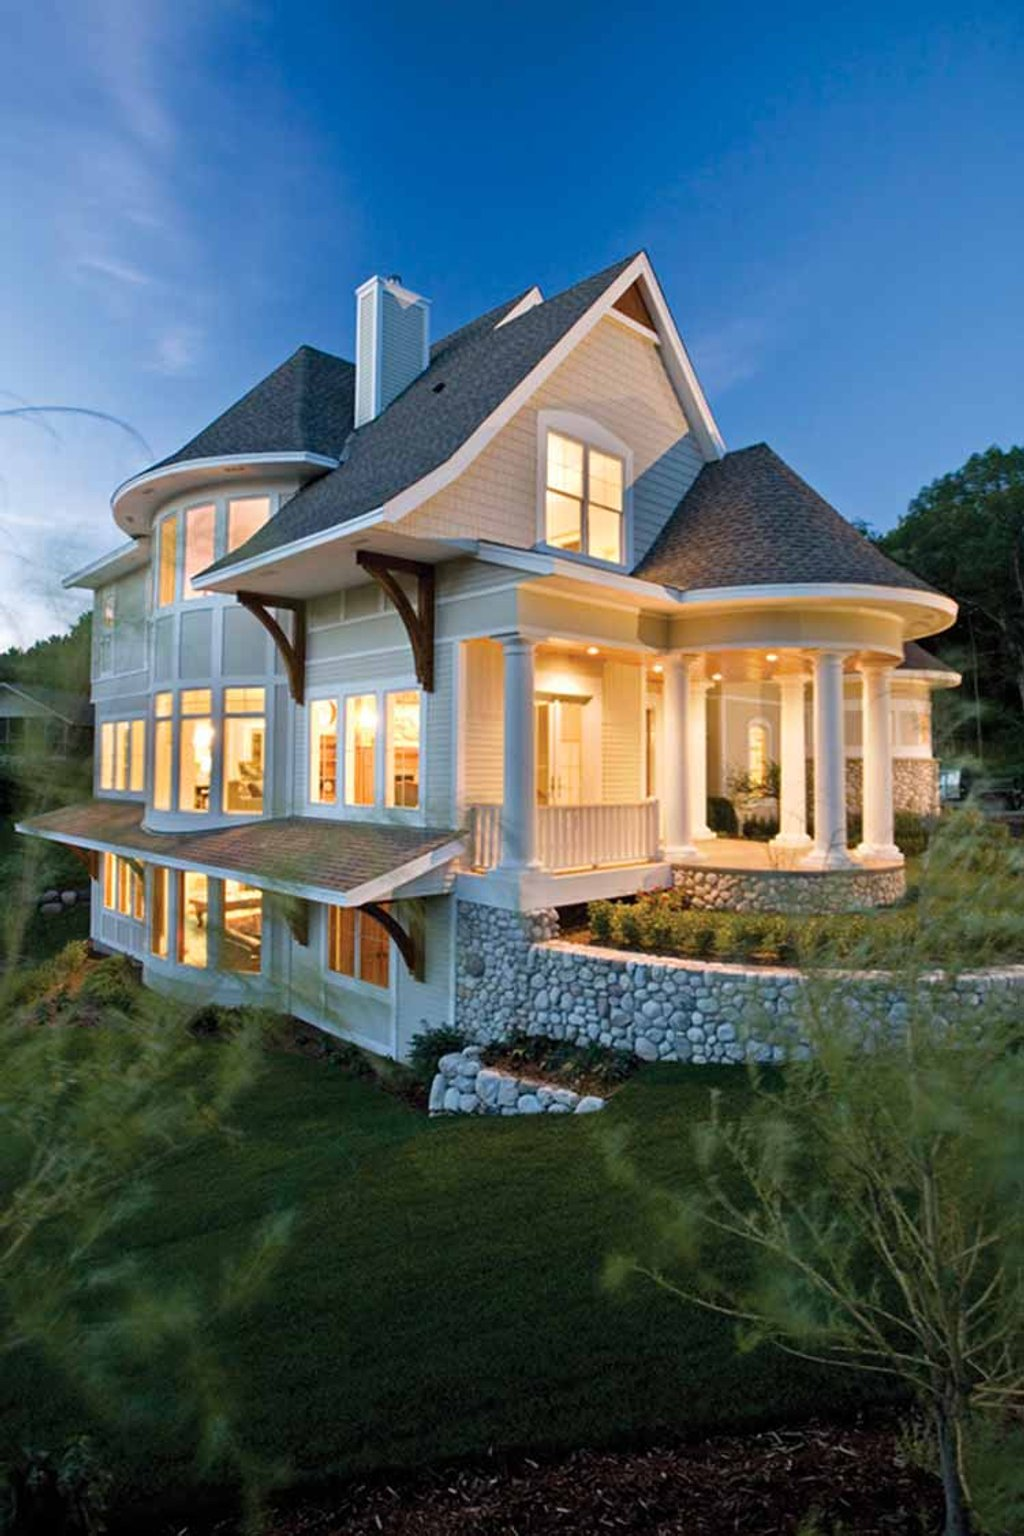 Victorian style house plan 4 beds 3 5 baths 3487 sq ft for Homeplan com